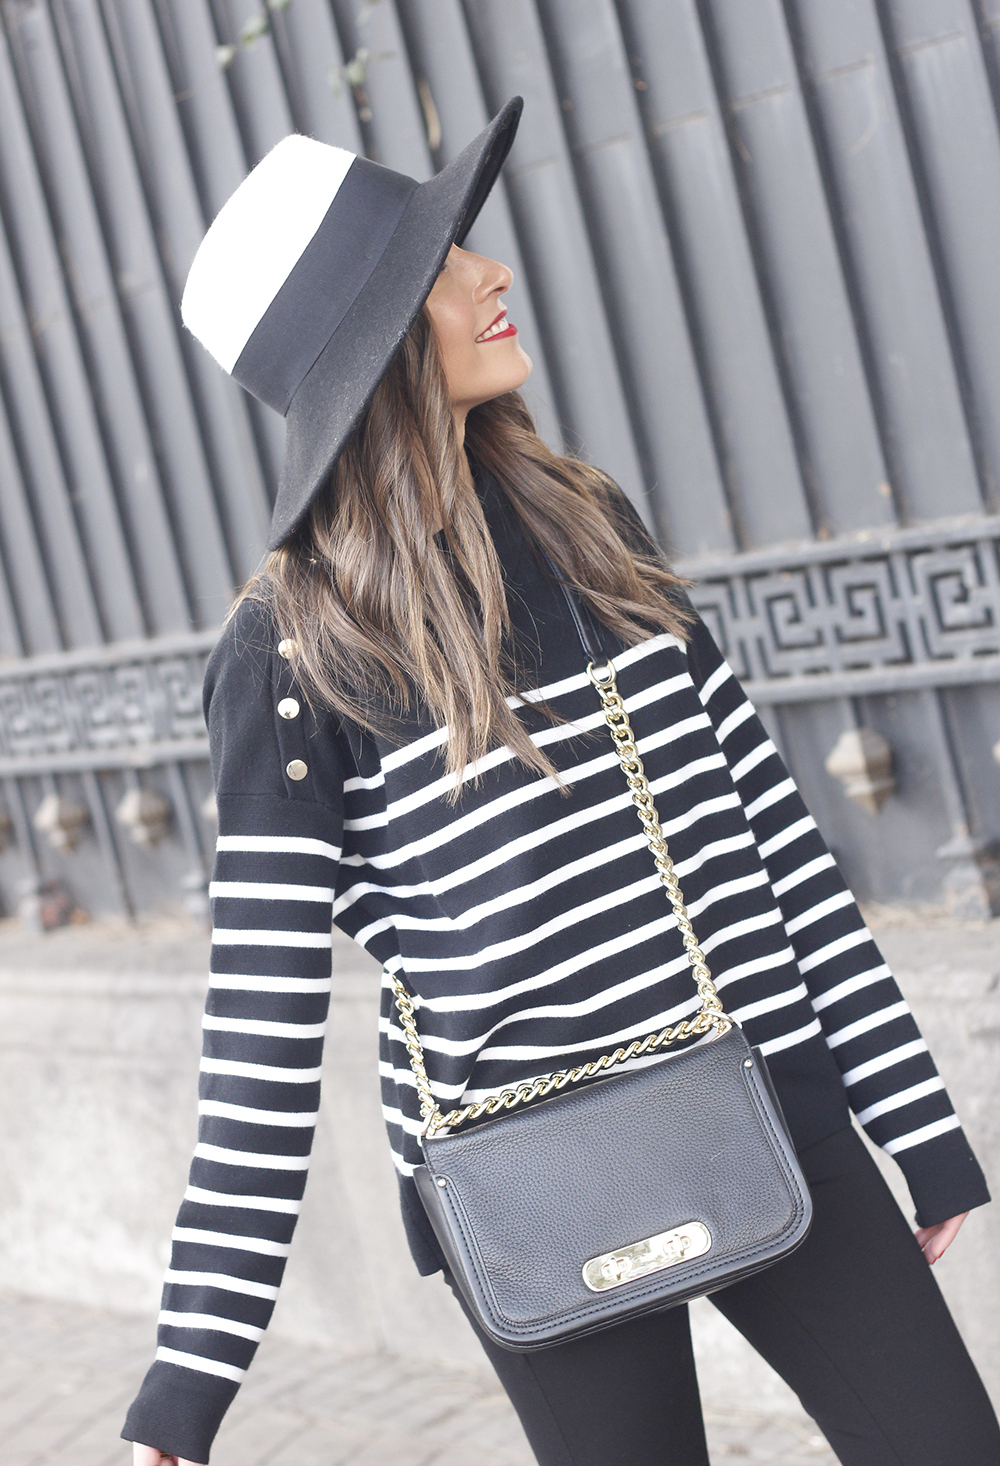 striped sweater maje pink heels black trousers coach bag uterqüe hat accessories style fashion06